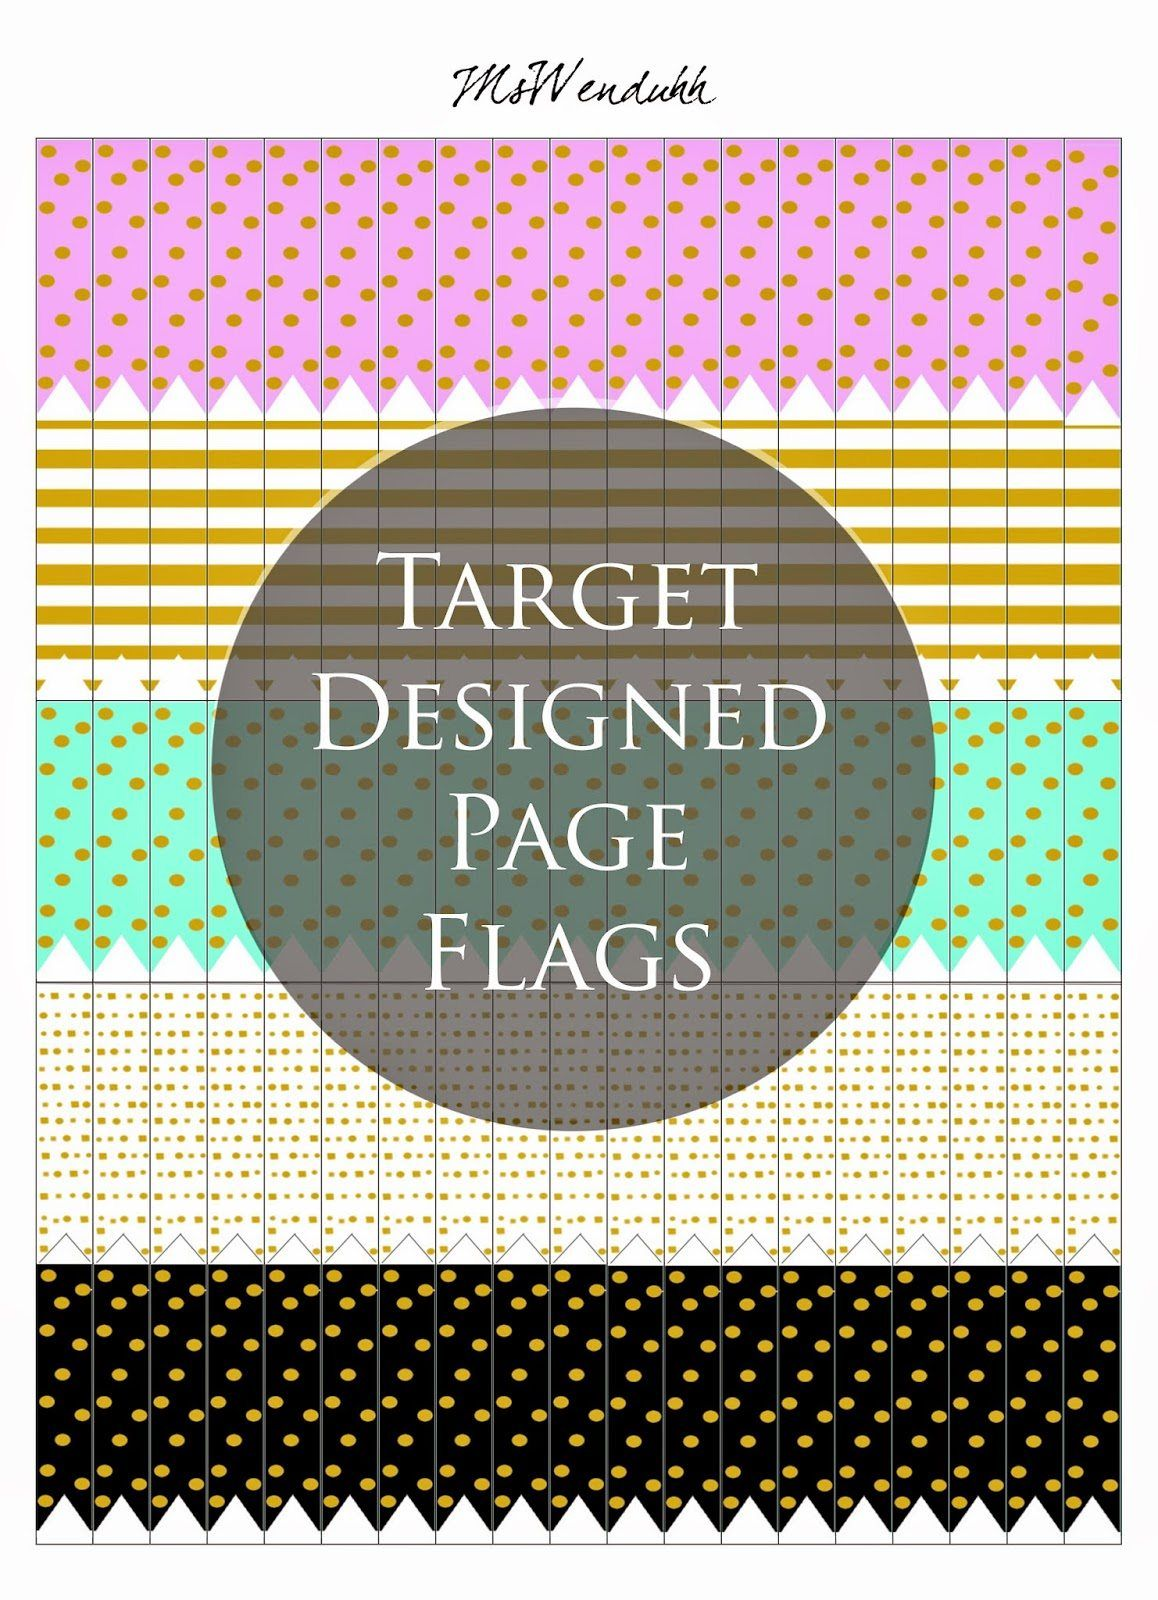 Calendar Planner Target : Target design page flags planners productivity and target